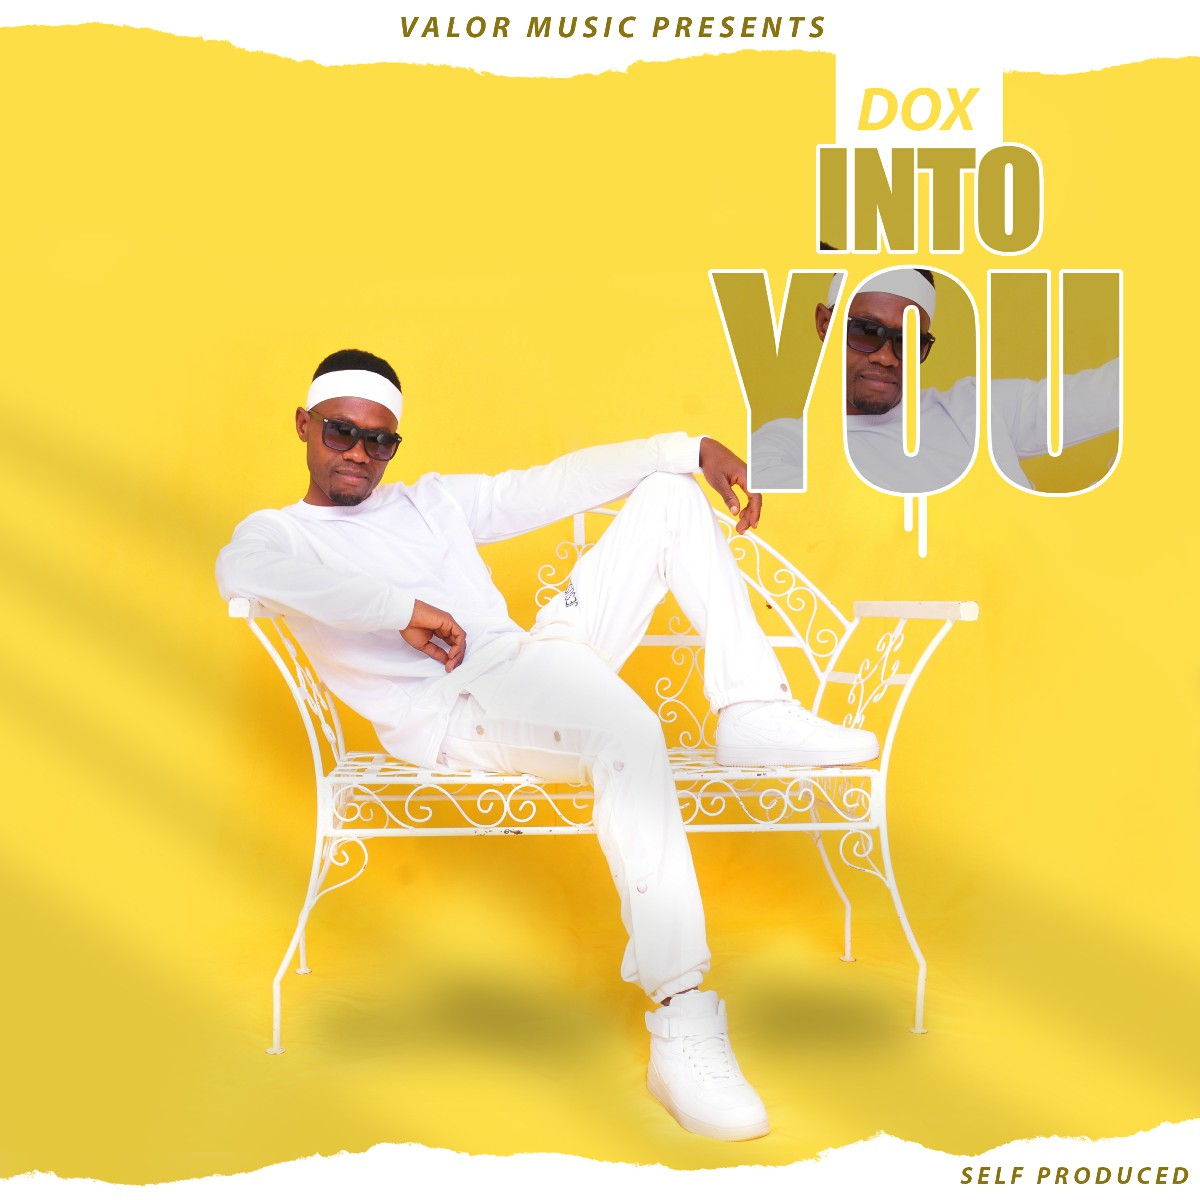 Dox - Into You